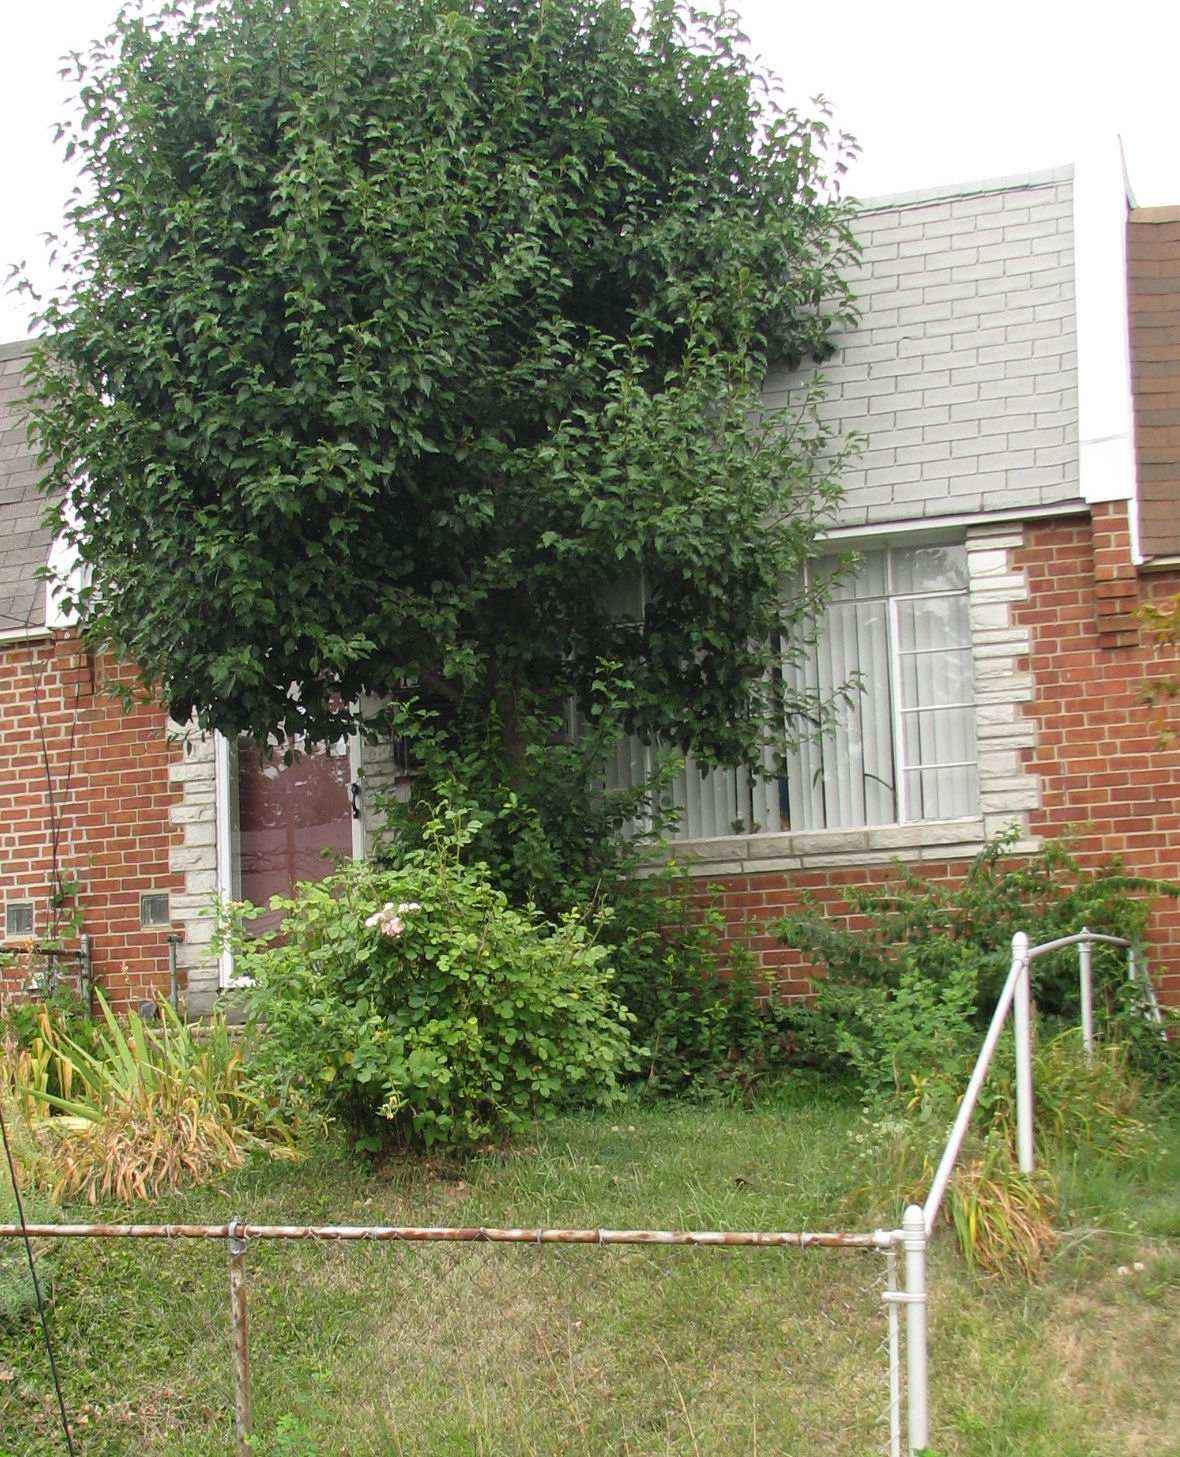 Lower Chi leaders take aim at vacant and blighted houses